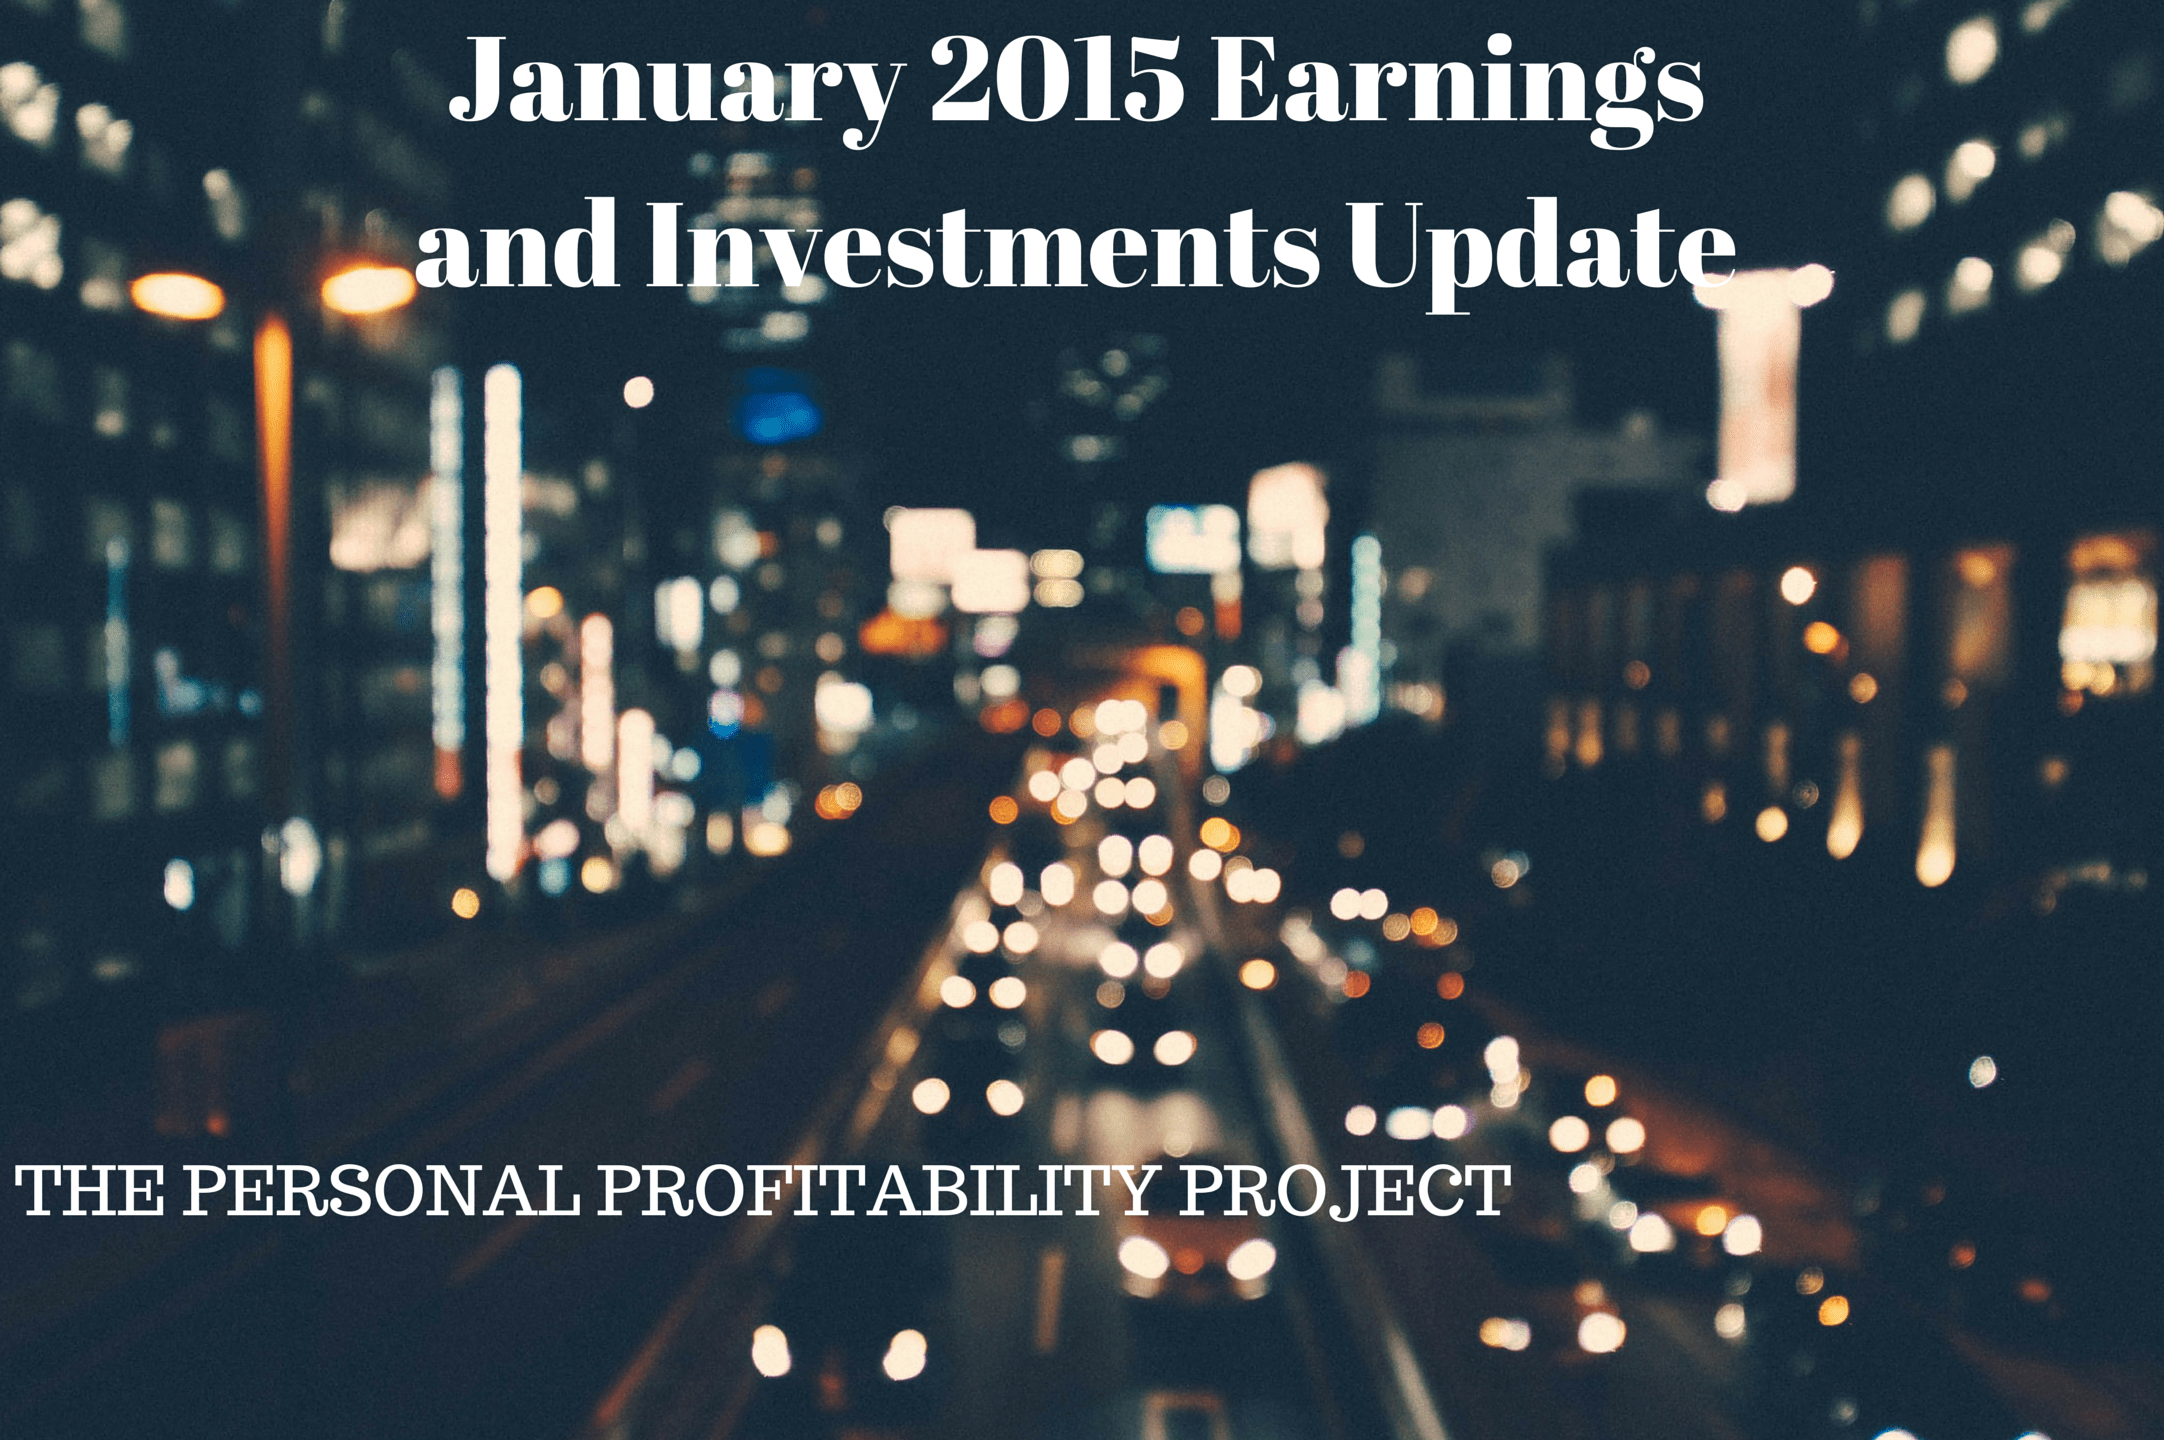 January 2015 Earnings and Investments